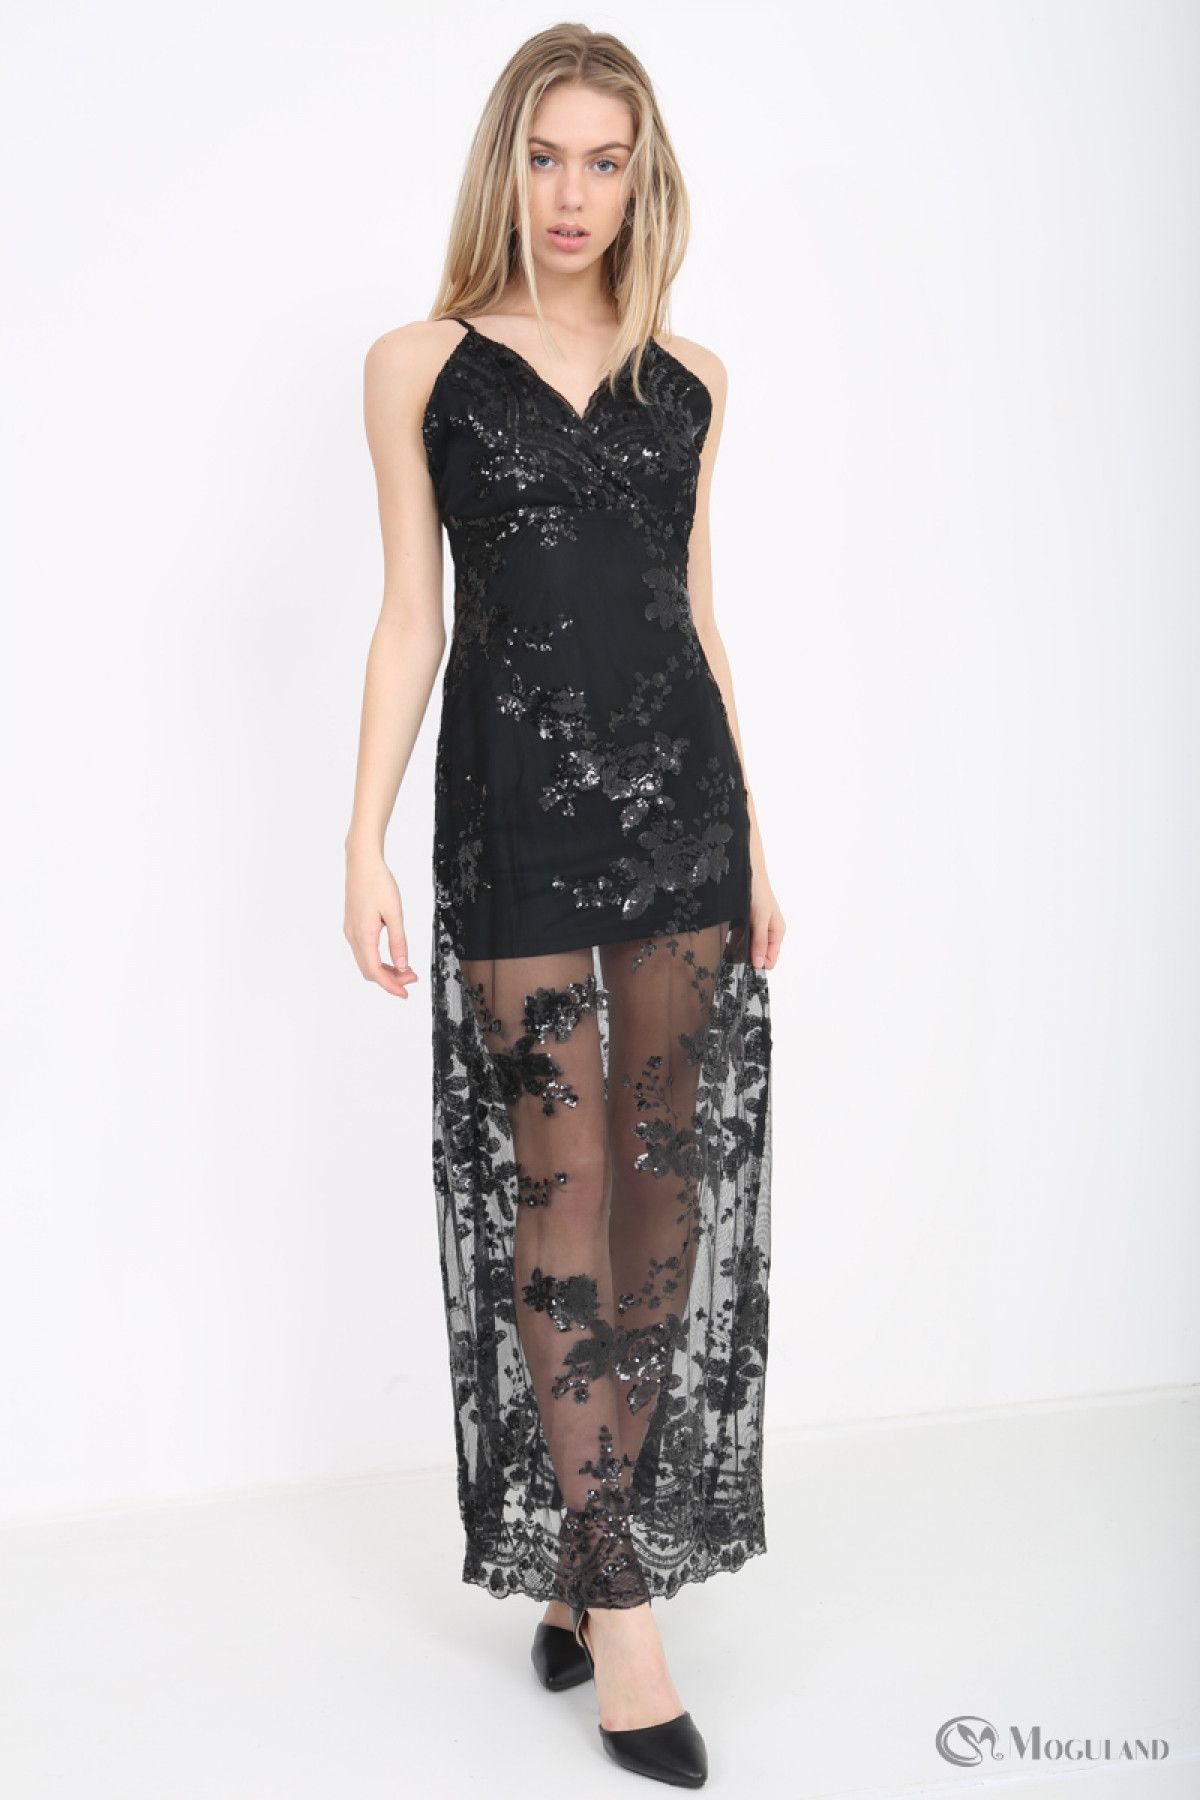 cade9486e3 Ladies black sheer sequin maxi dress wholesale - Women s Wholesale Clothing  Supplier